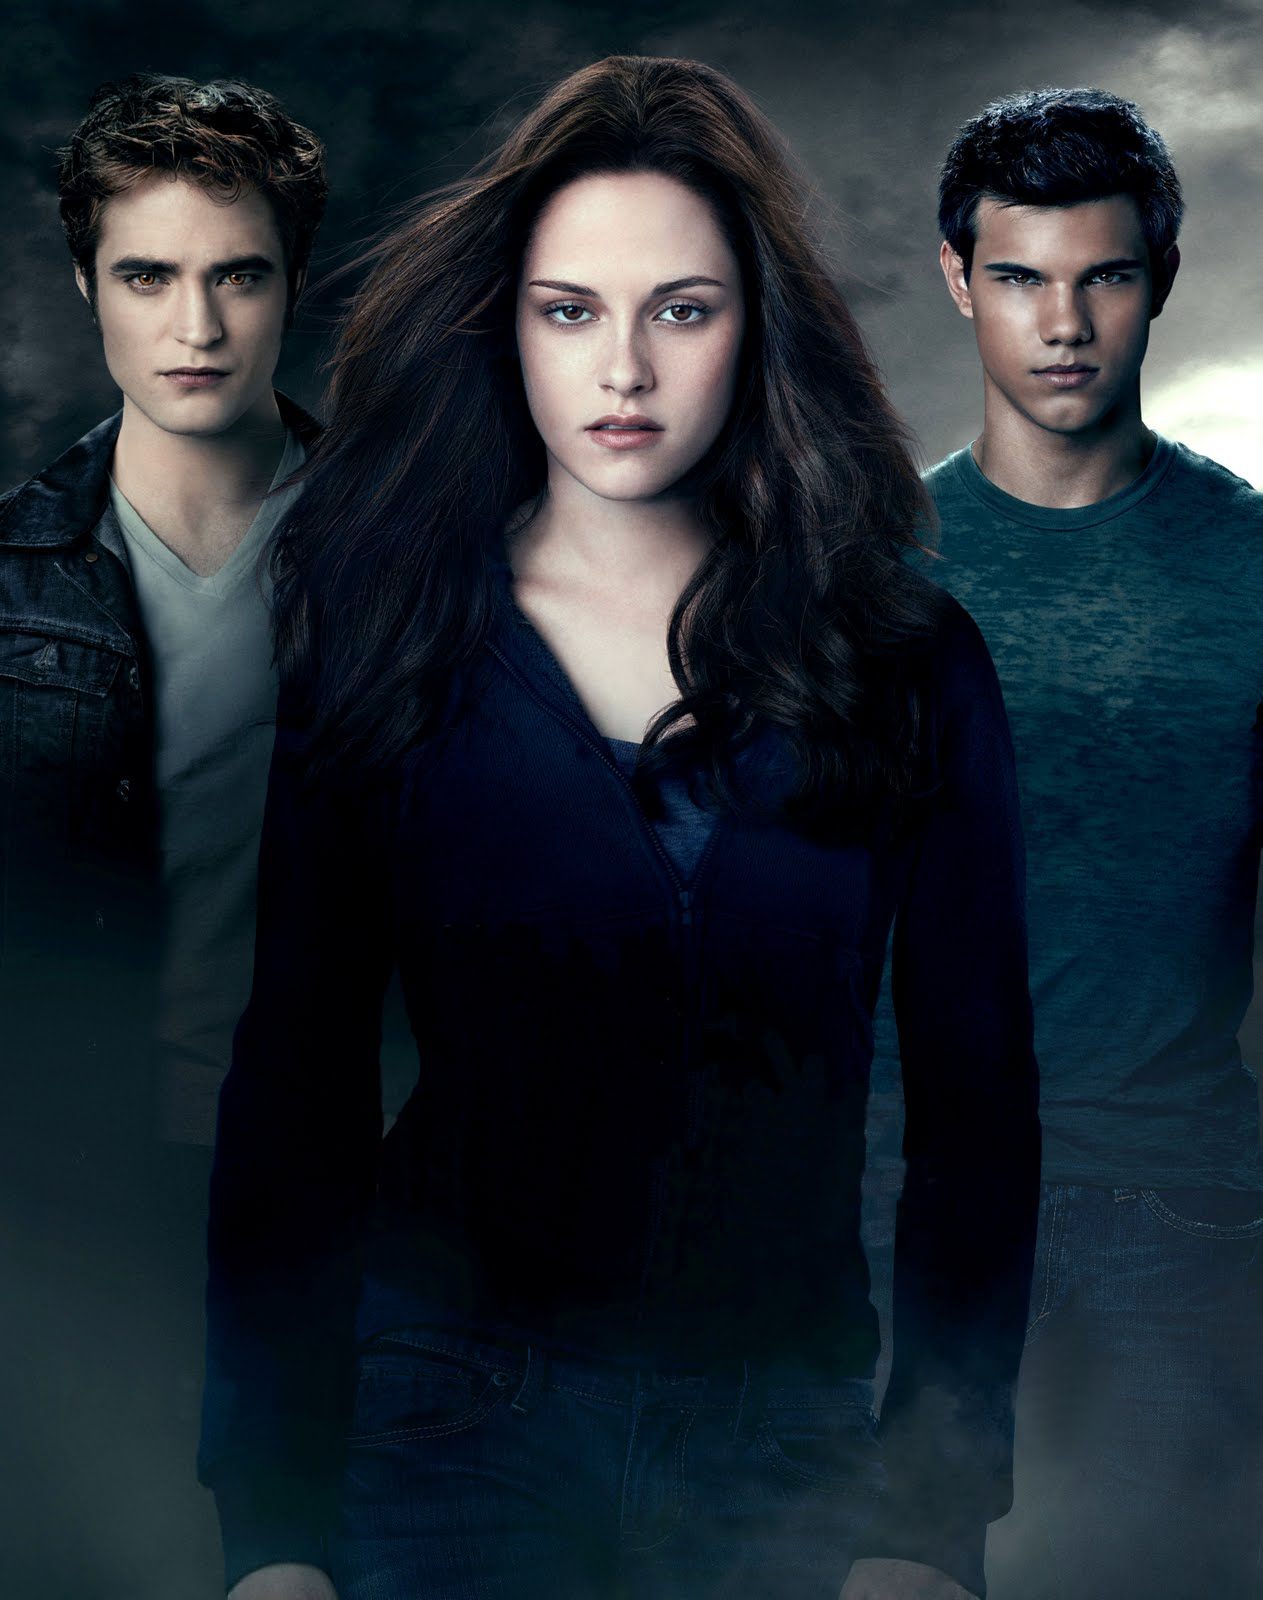 http://3.bp.blogspot.com/_frjCPpXN_Us/S7_lHnv770I/AAAAAAAAGsY/8p2WI7rA-vY/s1600/twilightxchangehqeclipse.jpg